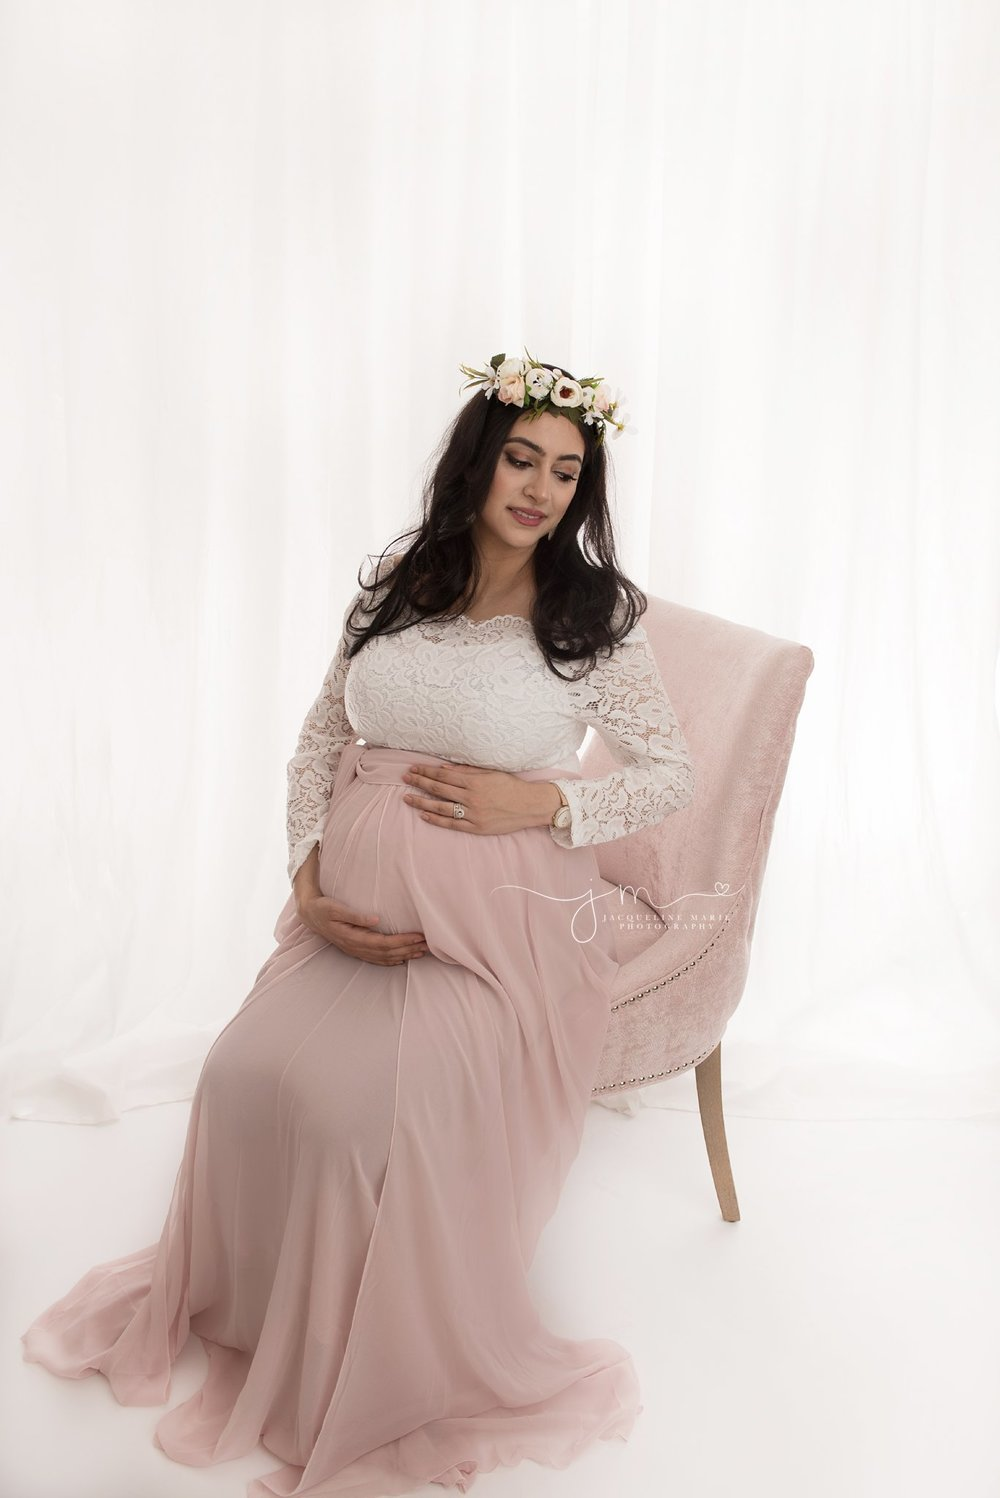 pregnanct mother sits on pink chair columbus ohio photography studio for maternity and pregnancy pictures